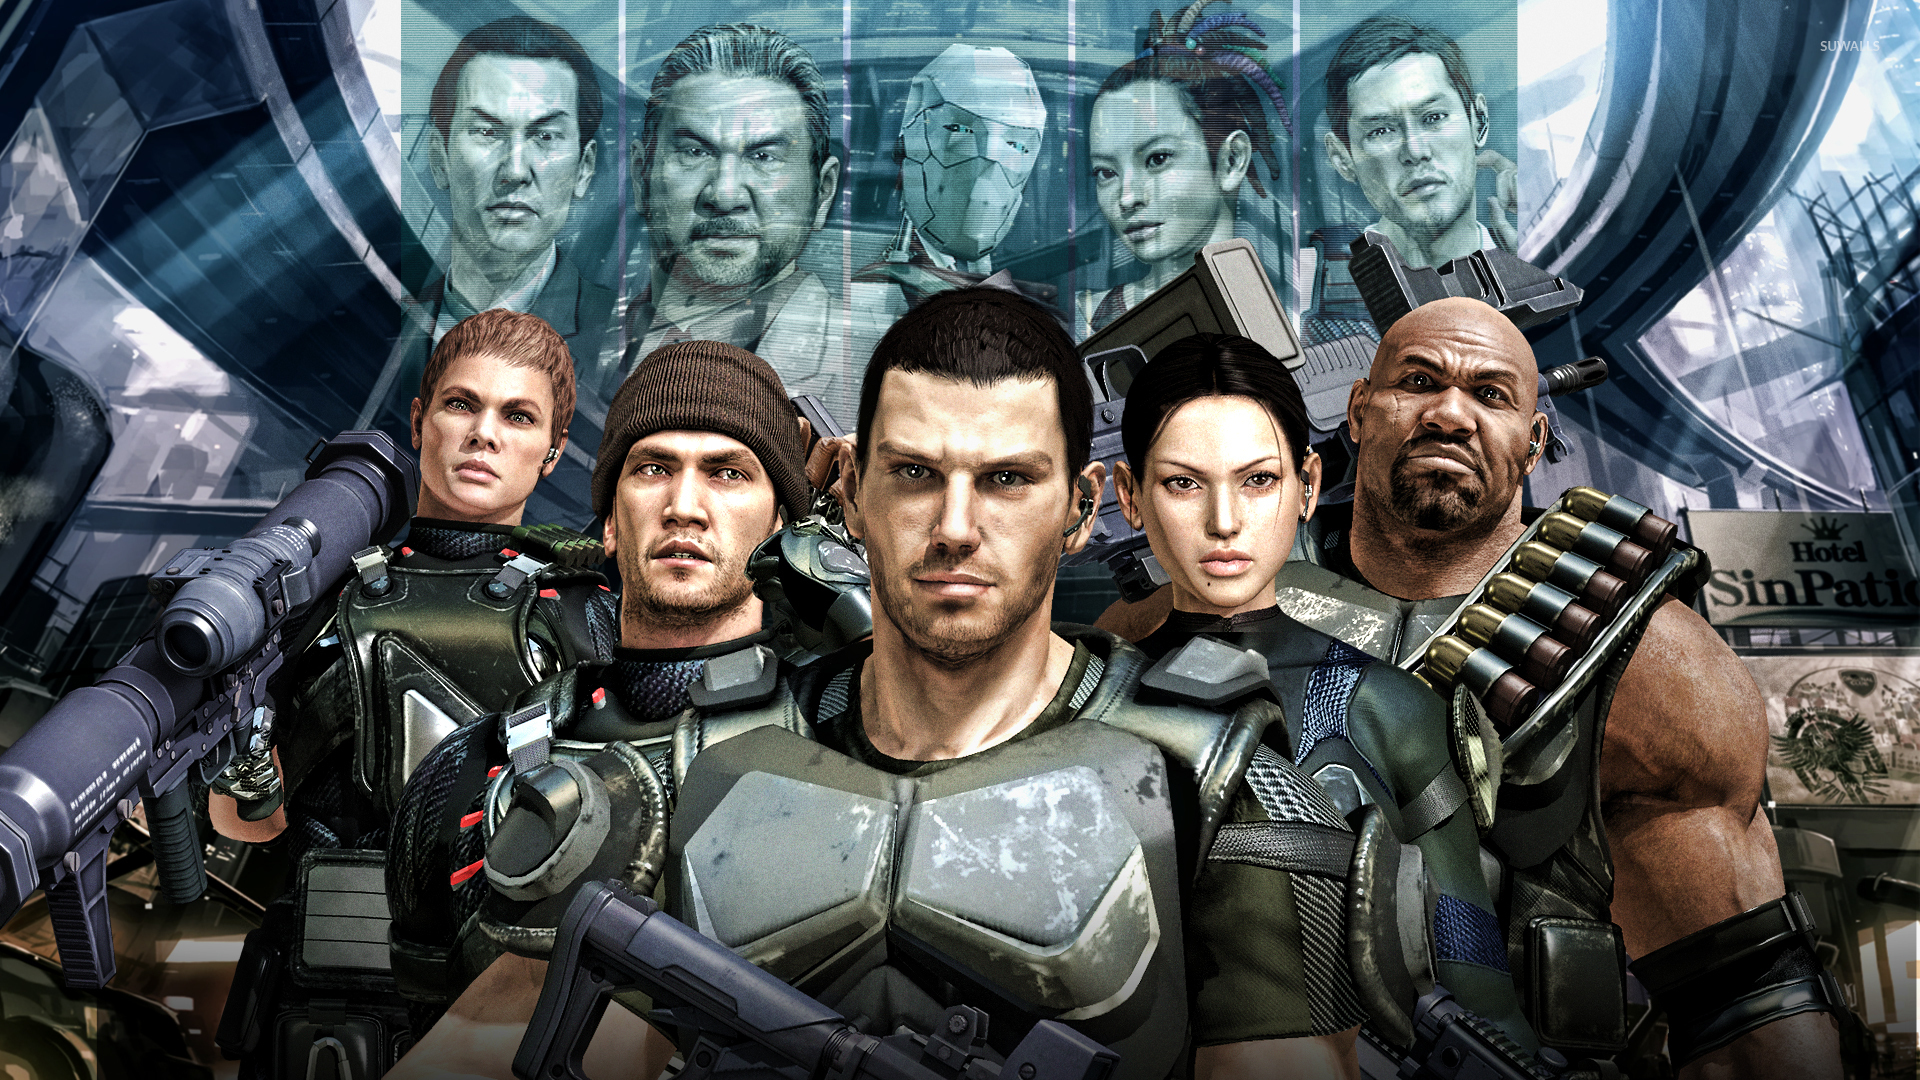 binary domain romance options for fallout